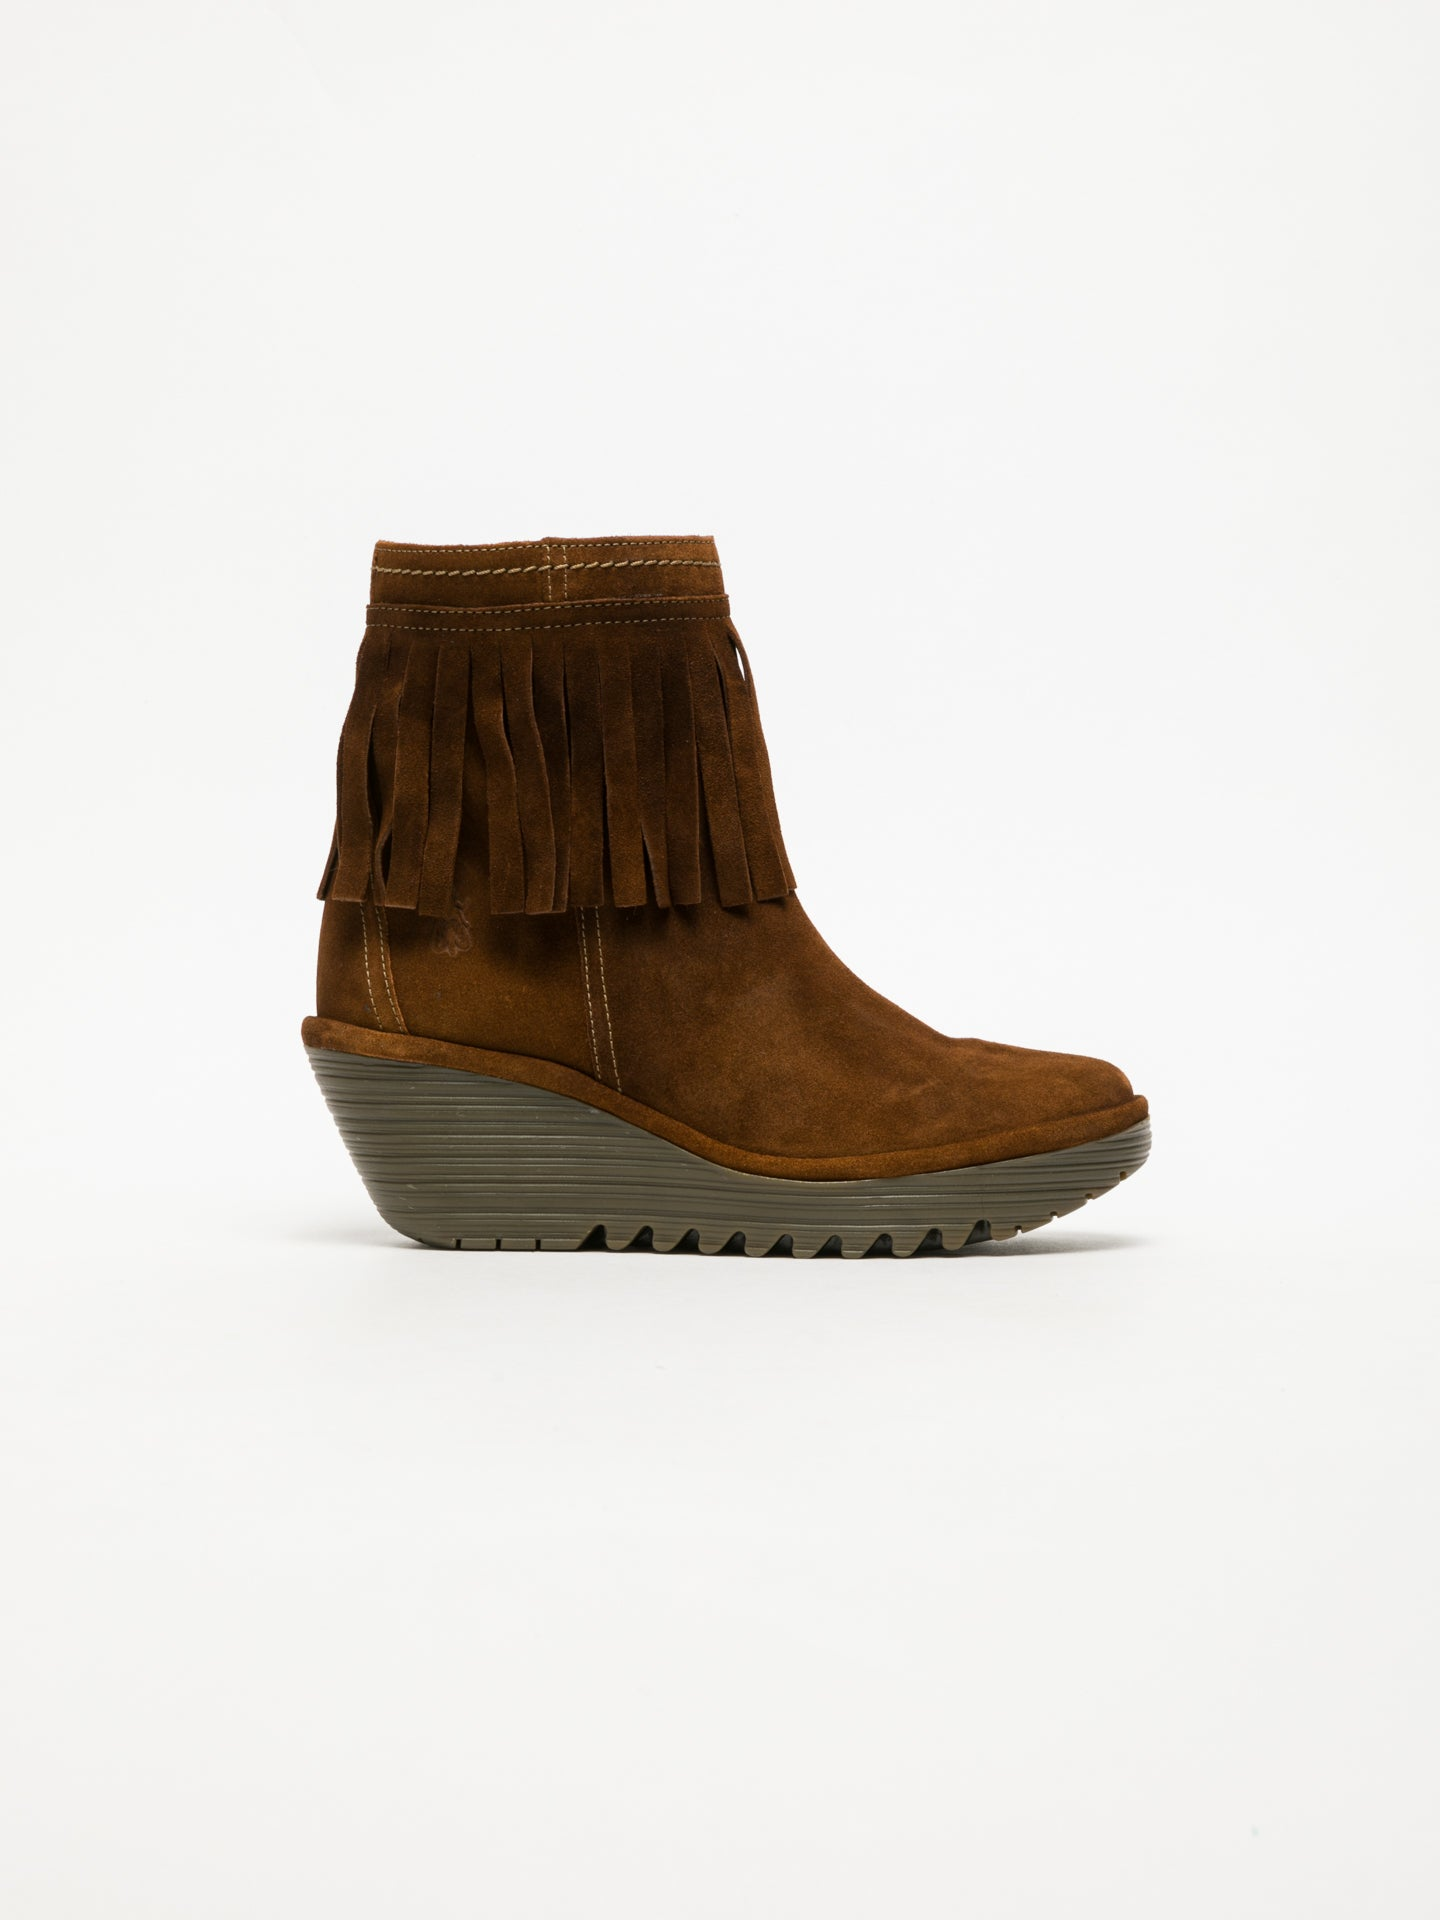 Fly London Peru Fringed Ankle Boots